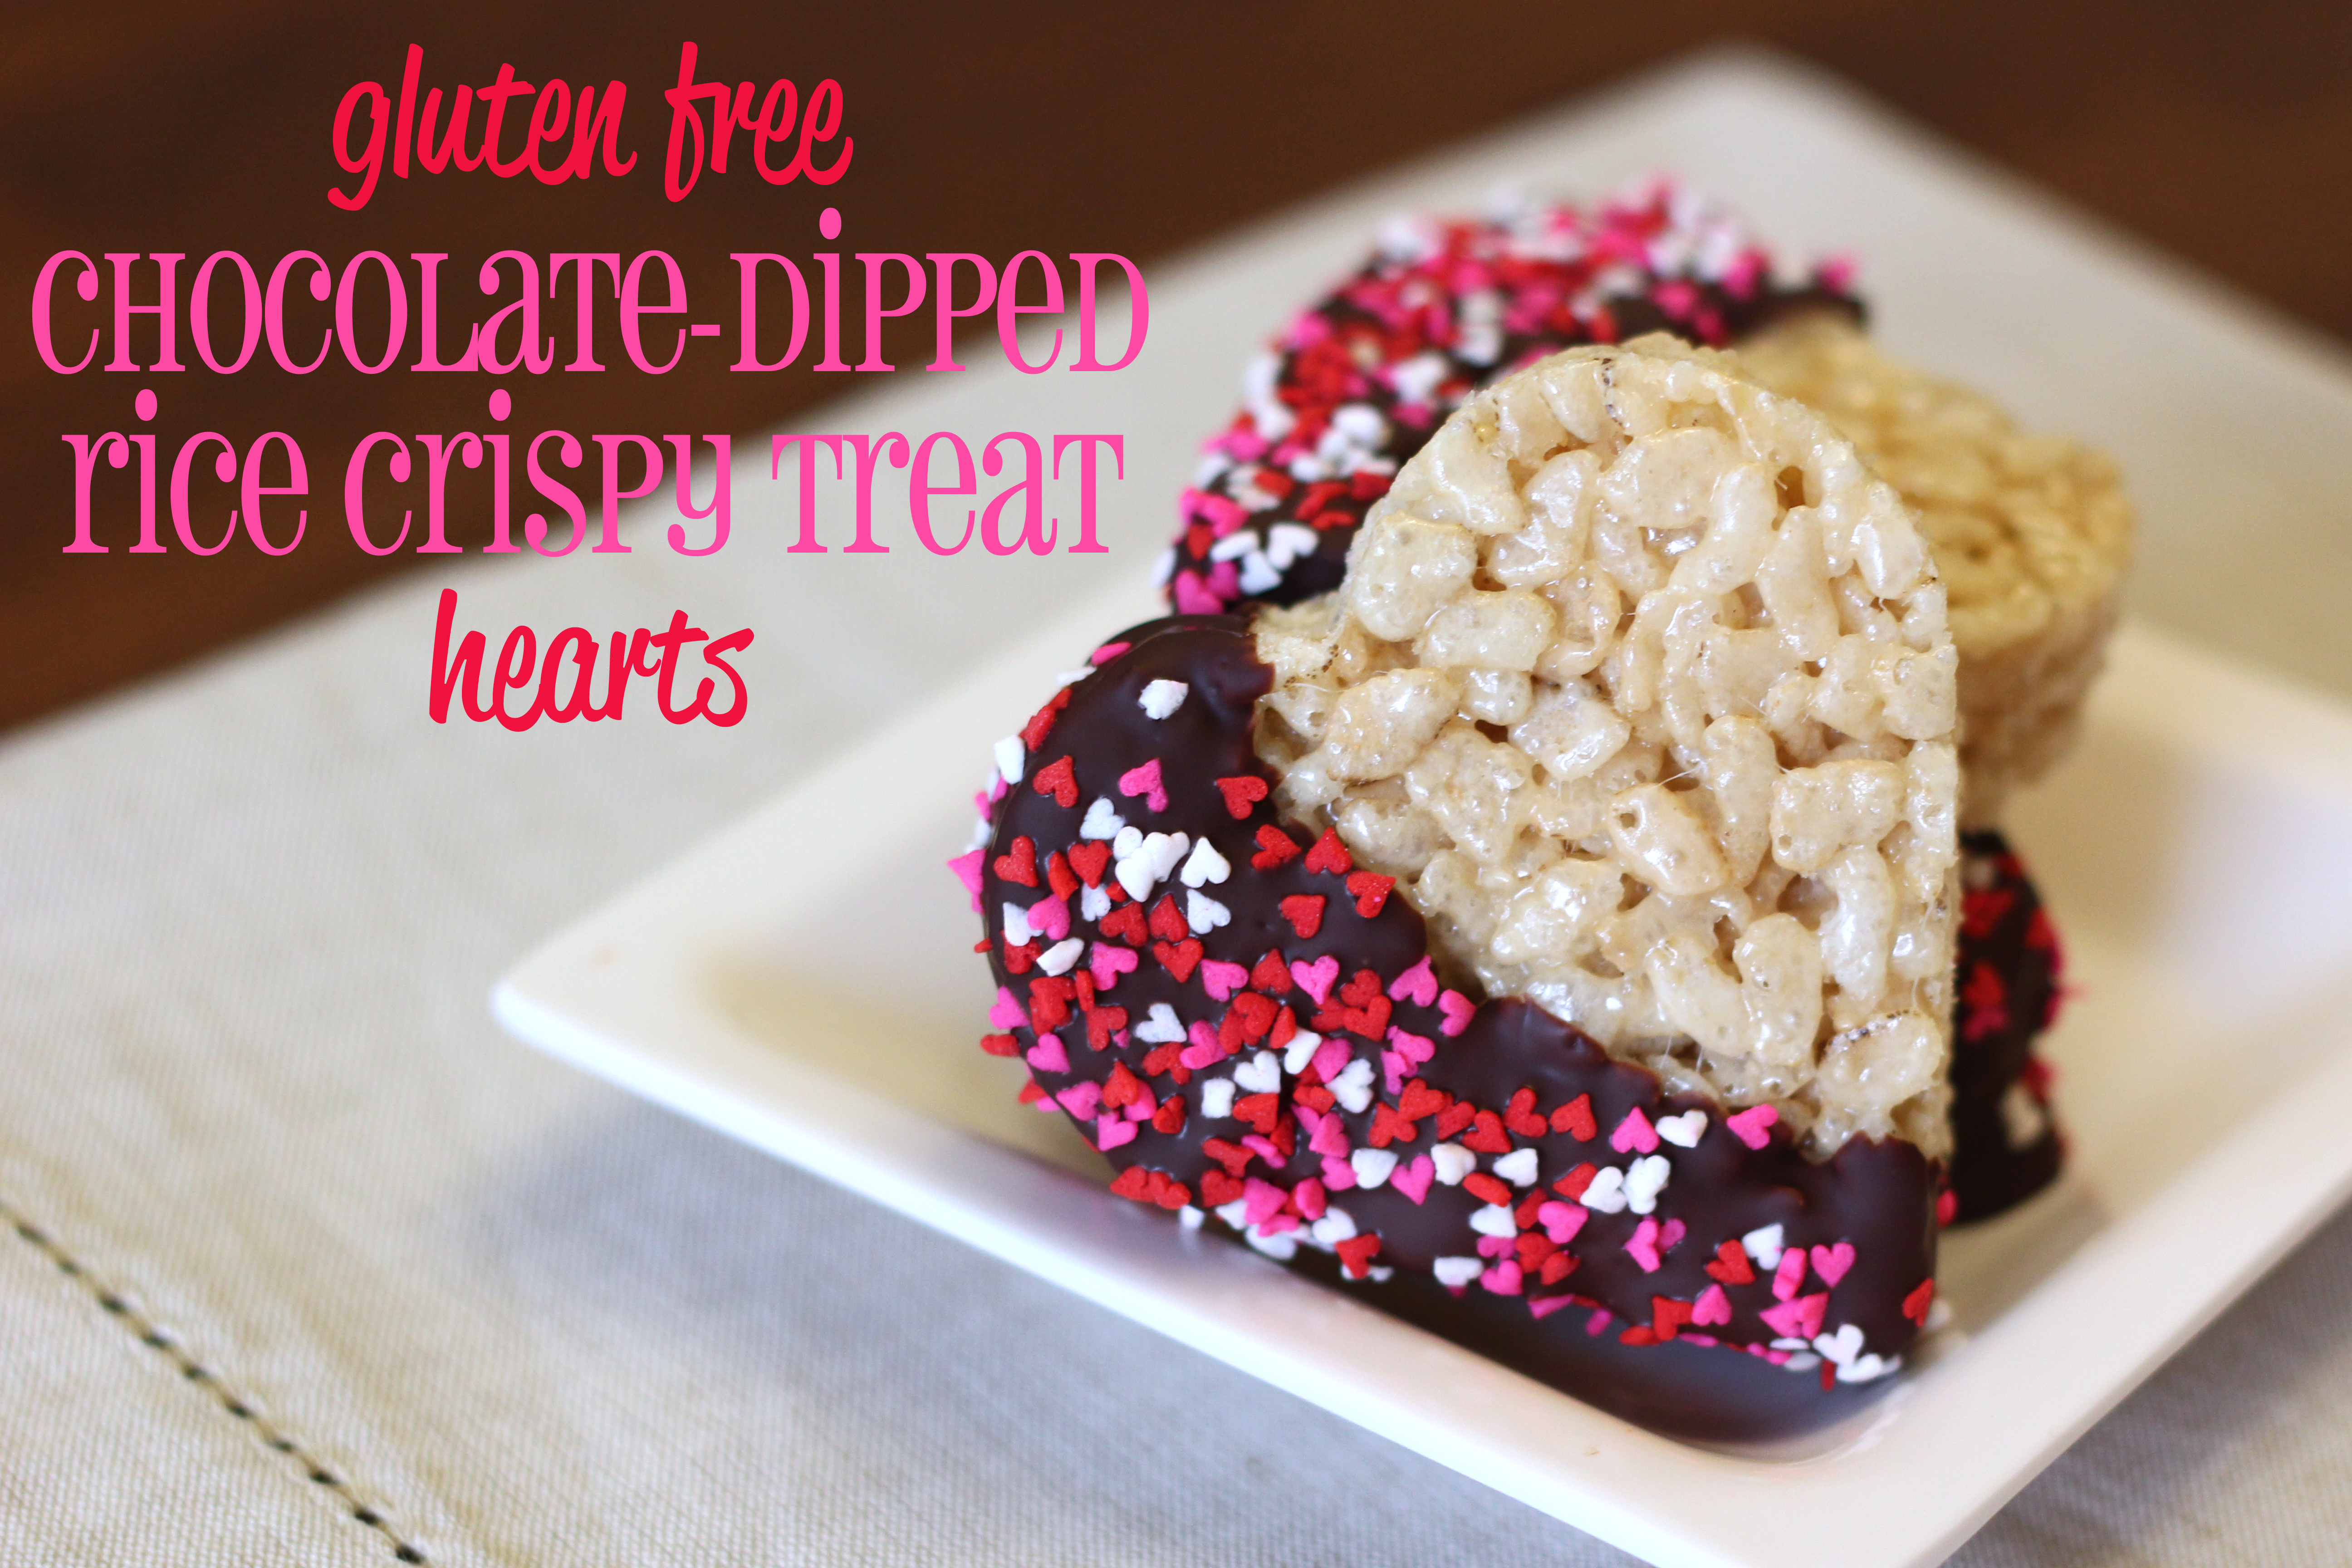 Gluten Free Chocolate Dipped Rice Crispy Treat Hearts